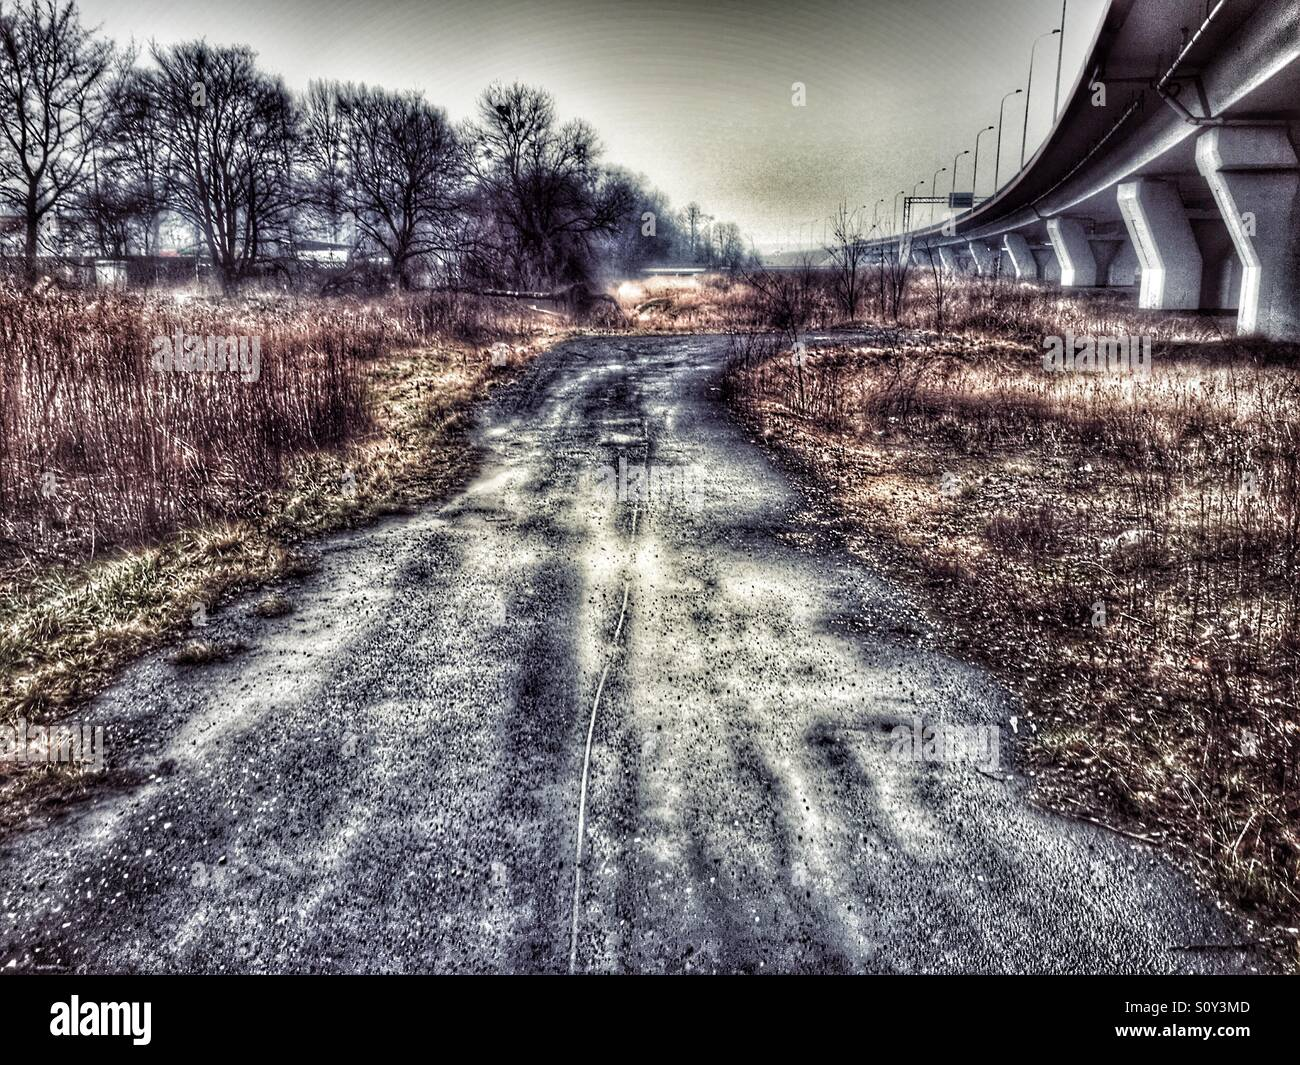 Apocalyptic view of road to nowhere and viaduct - Stock Image